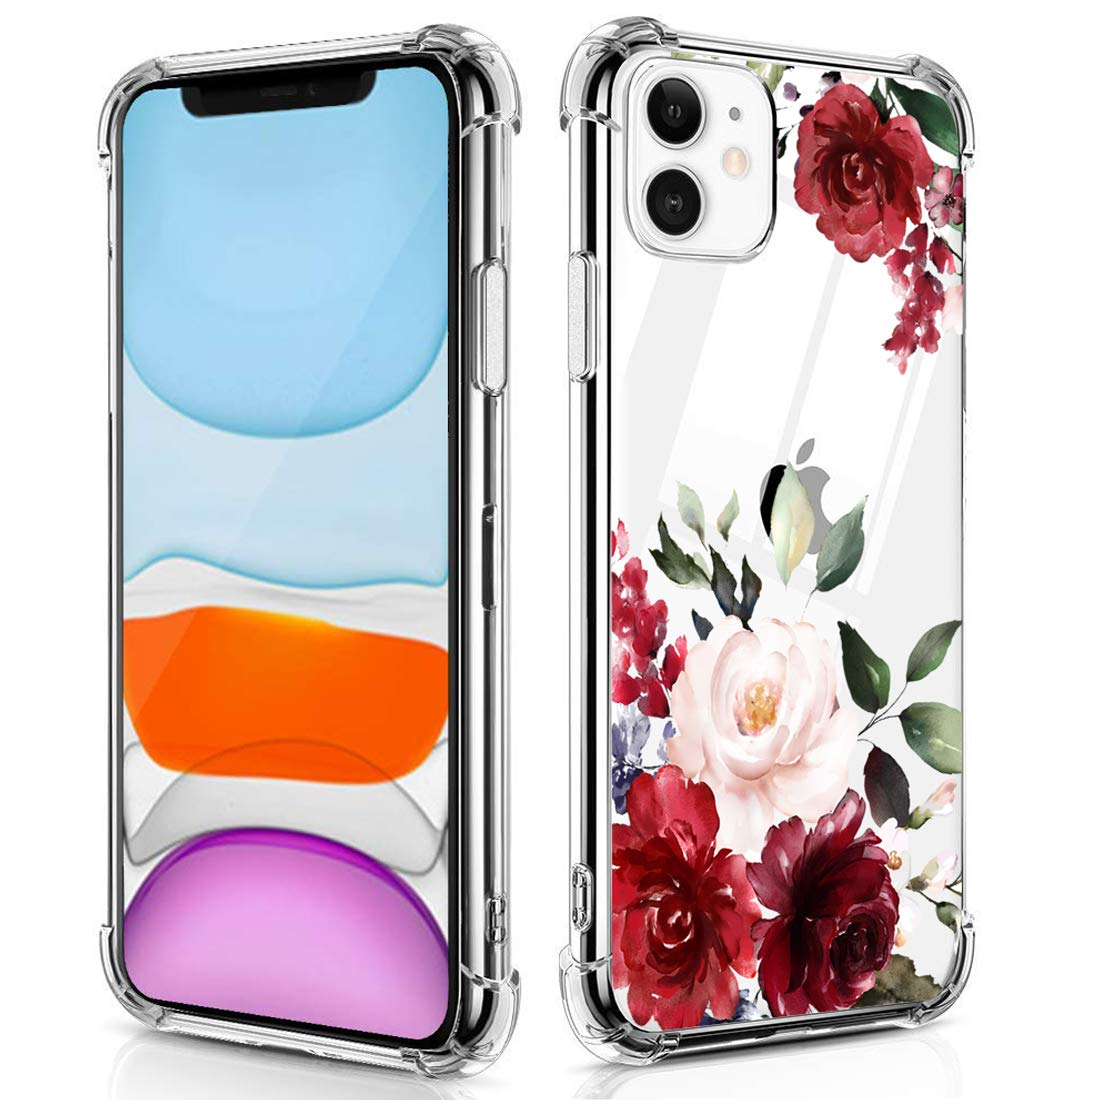 RicHyun Case for Women Girls, Red Rose Flowers Pattern Soft Flexible TPU Shockproof Cases for iPhone 11